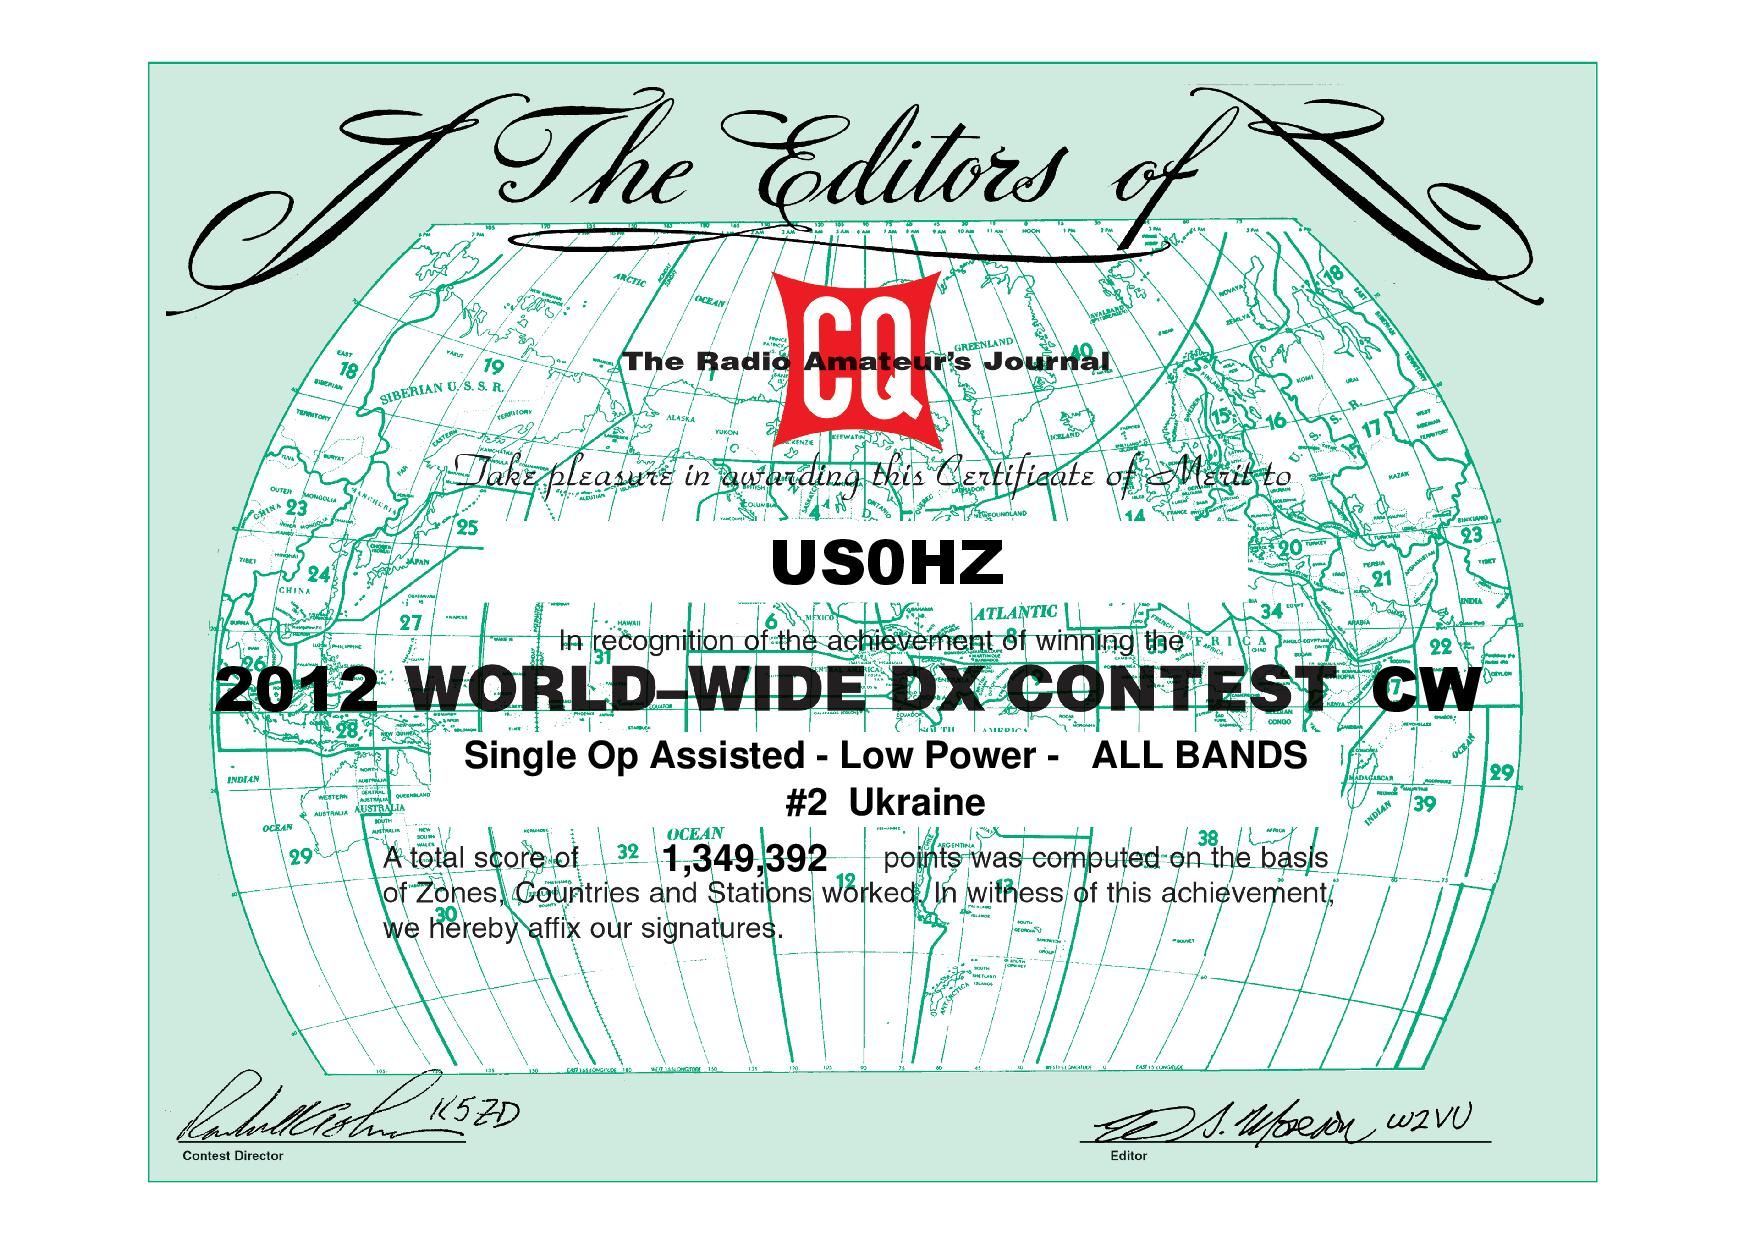 US0HZ CQWW 2012 CW certificate page 001